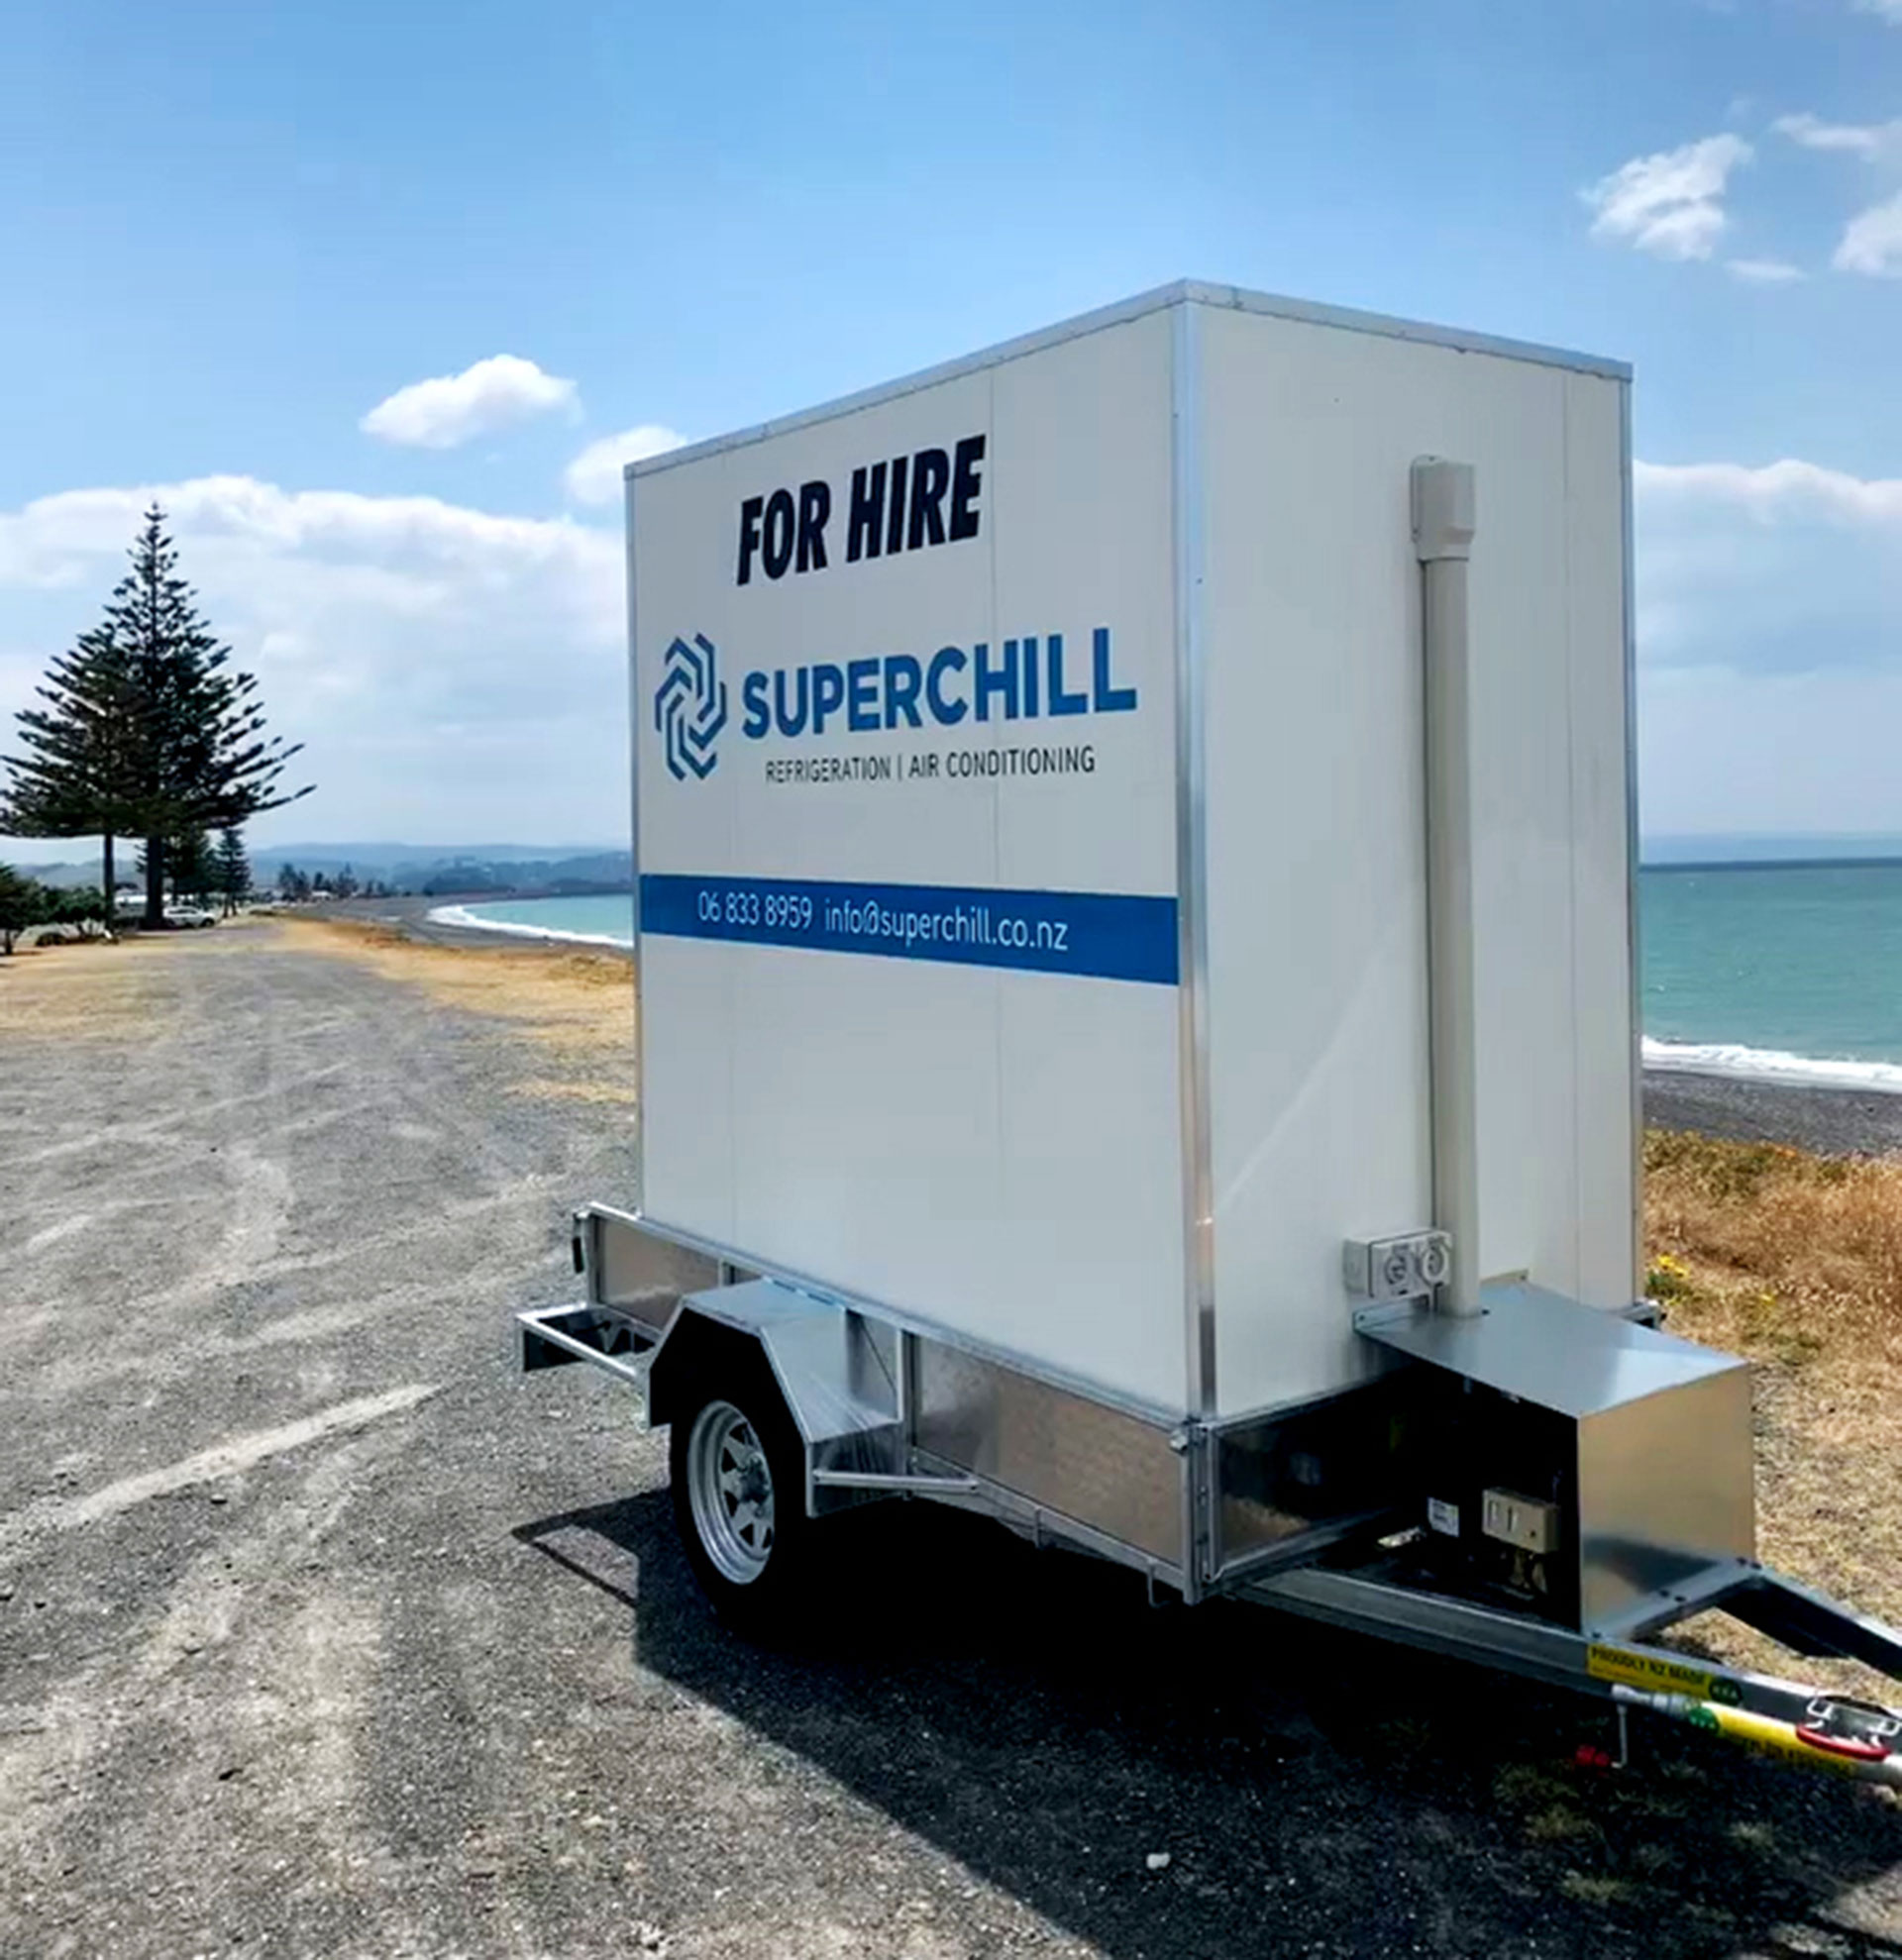 https://superchill.co.nz/wp-content/uploads/2019/12/Superchill-Chiller-Trailer-1920wide.jpg